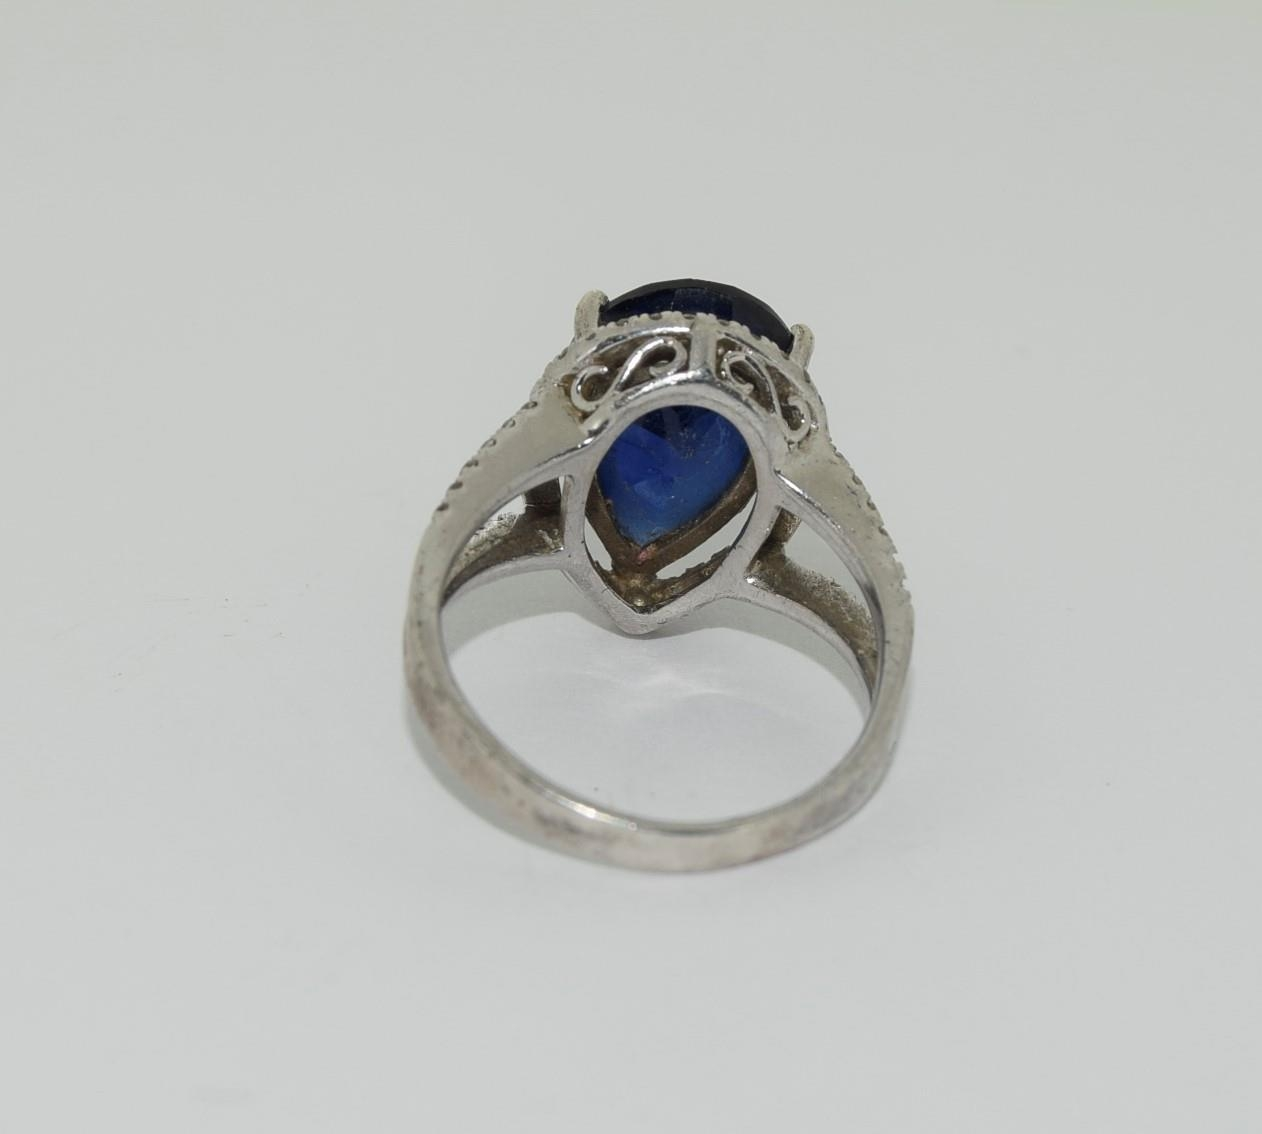 Silver ladies blue stone pear shape ring. Size K. - Image 3 of 3